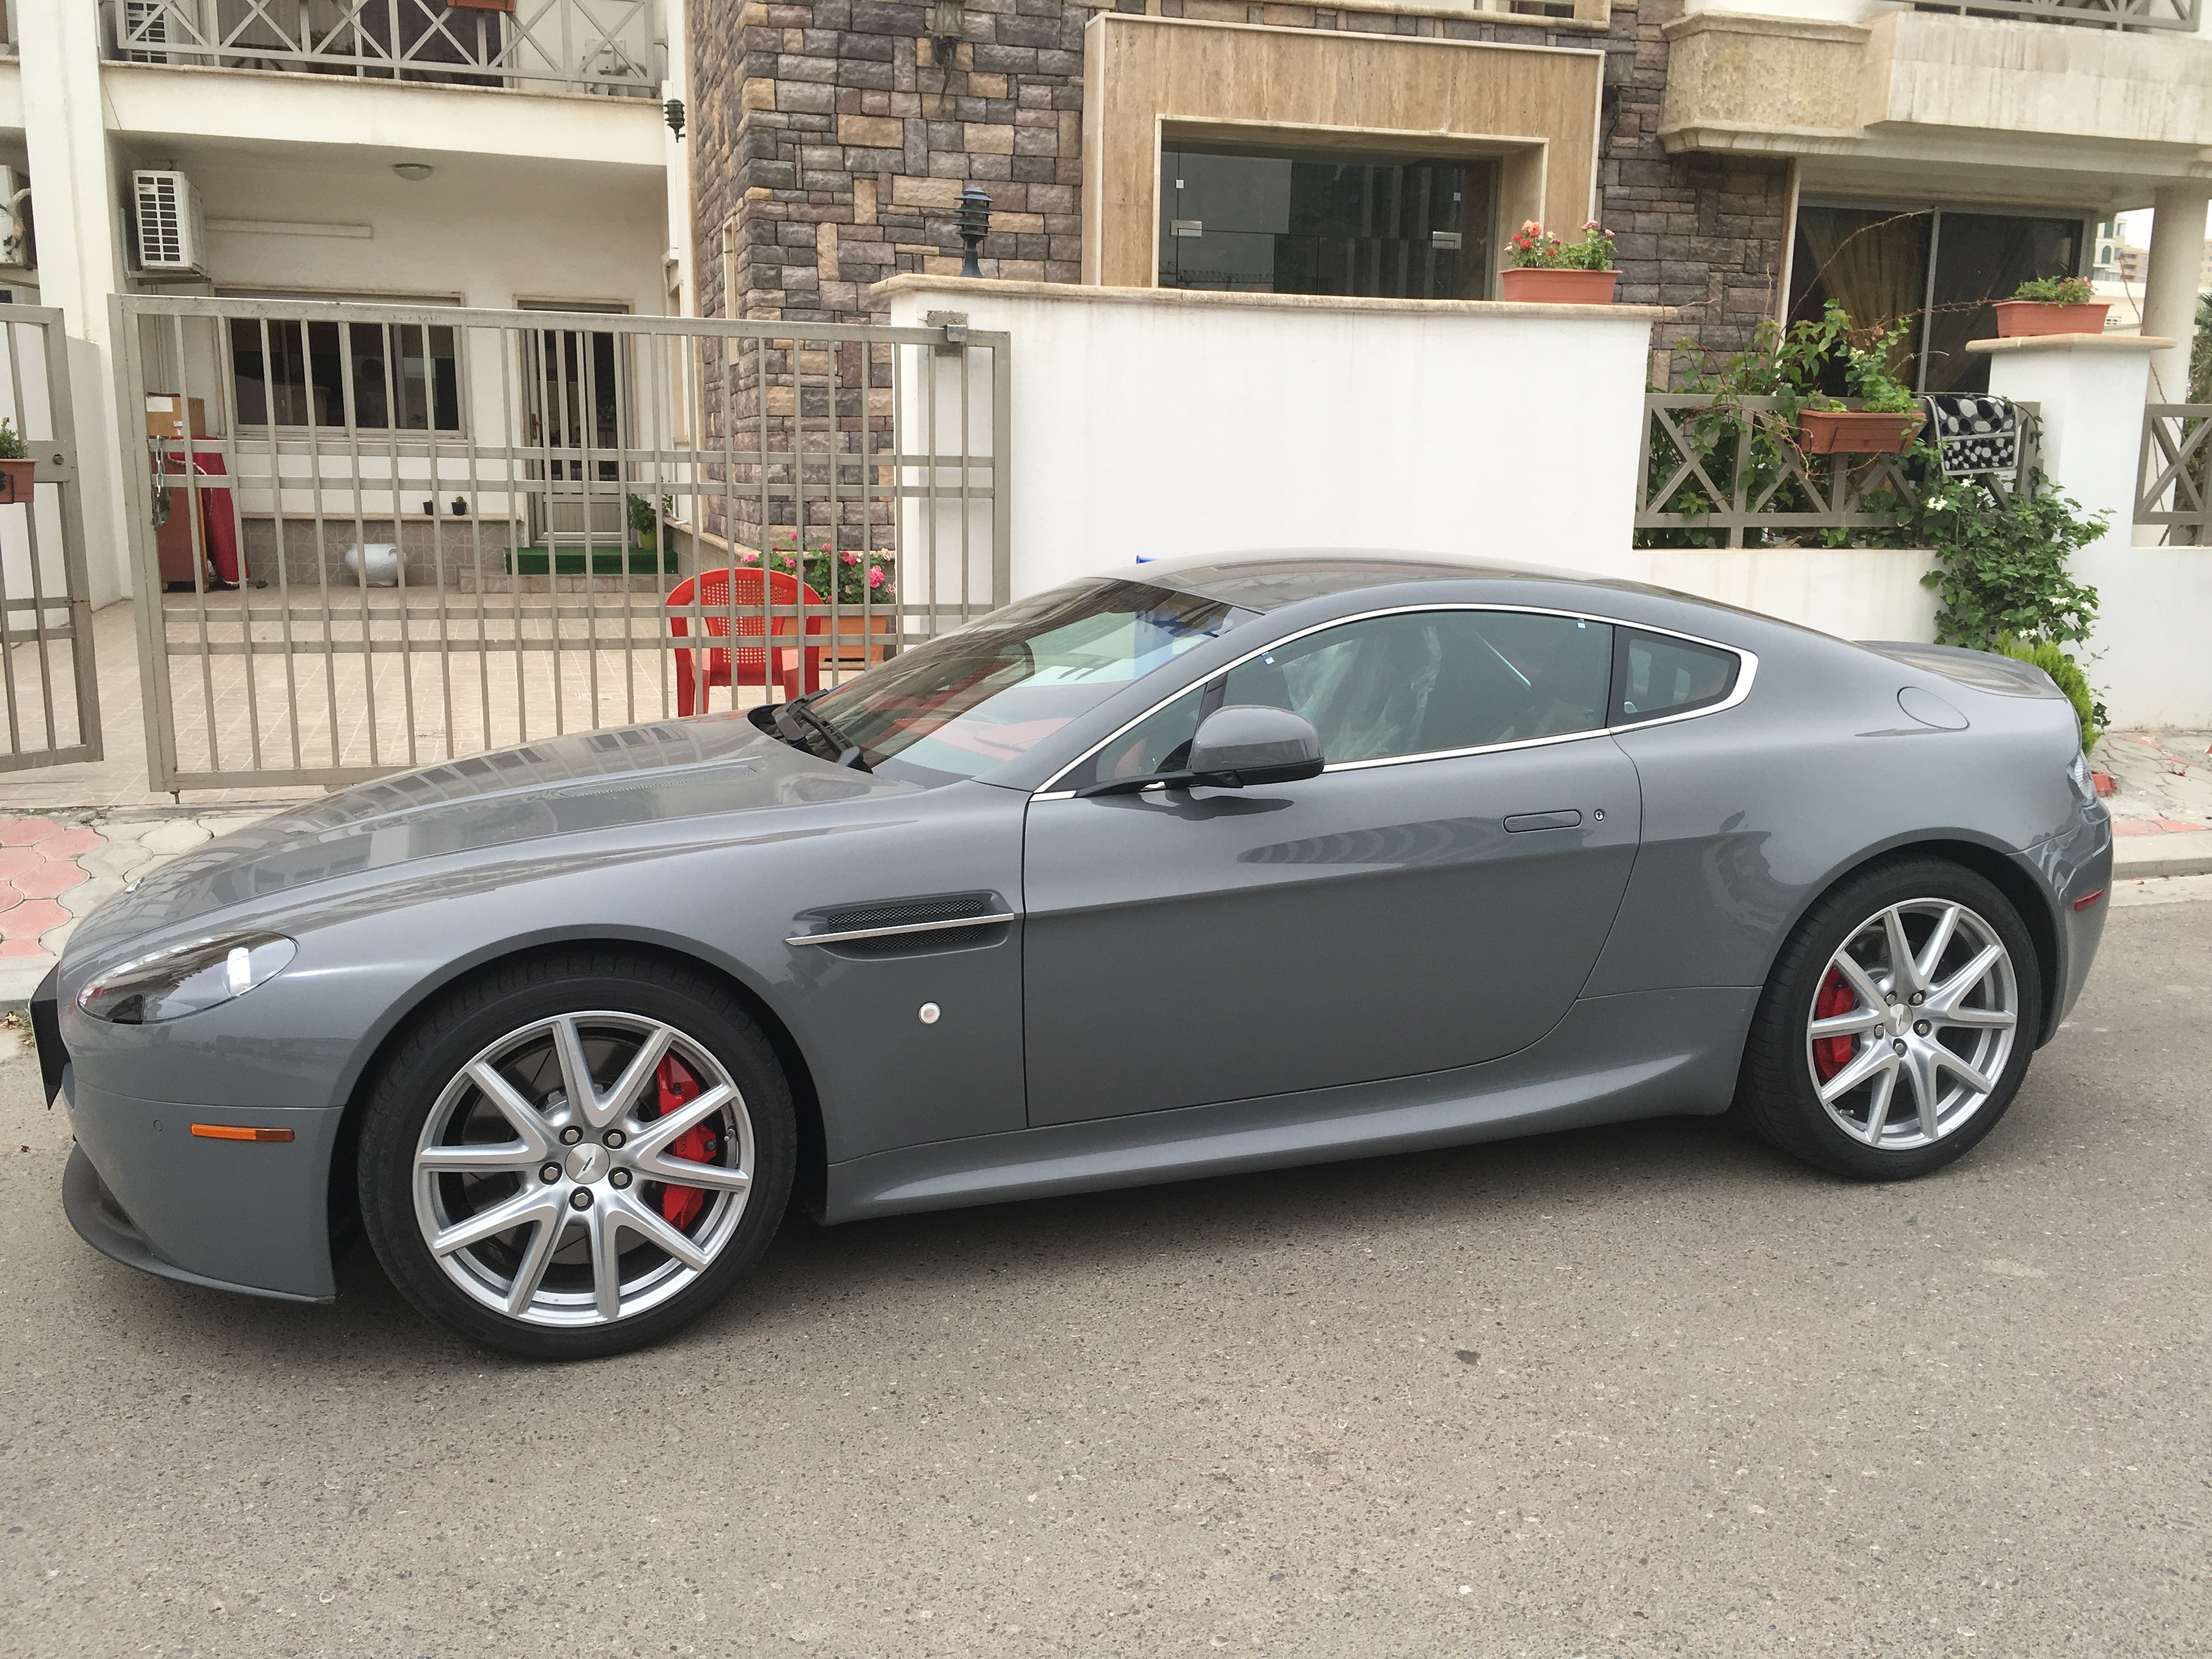 In a sign that some people in cash-strapped Iraqi Kurdistan still have means for the extravagant, a meticulously polished late-model Aston Martin is seen parked on a street in Irbil, the region's capital. (S. Behn/VOA)